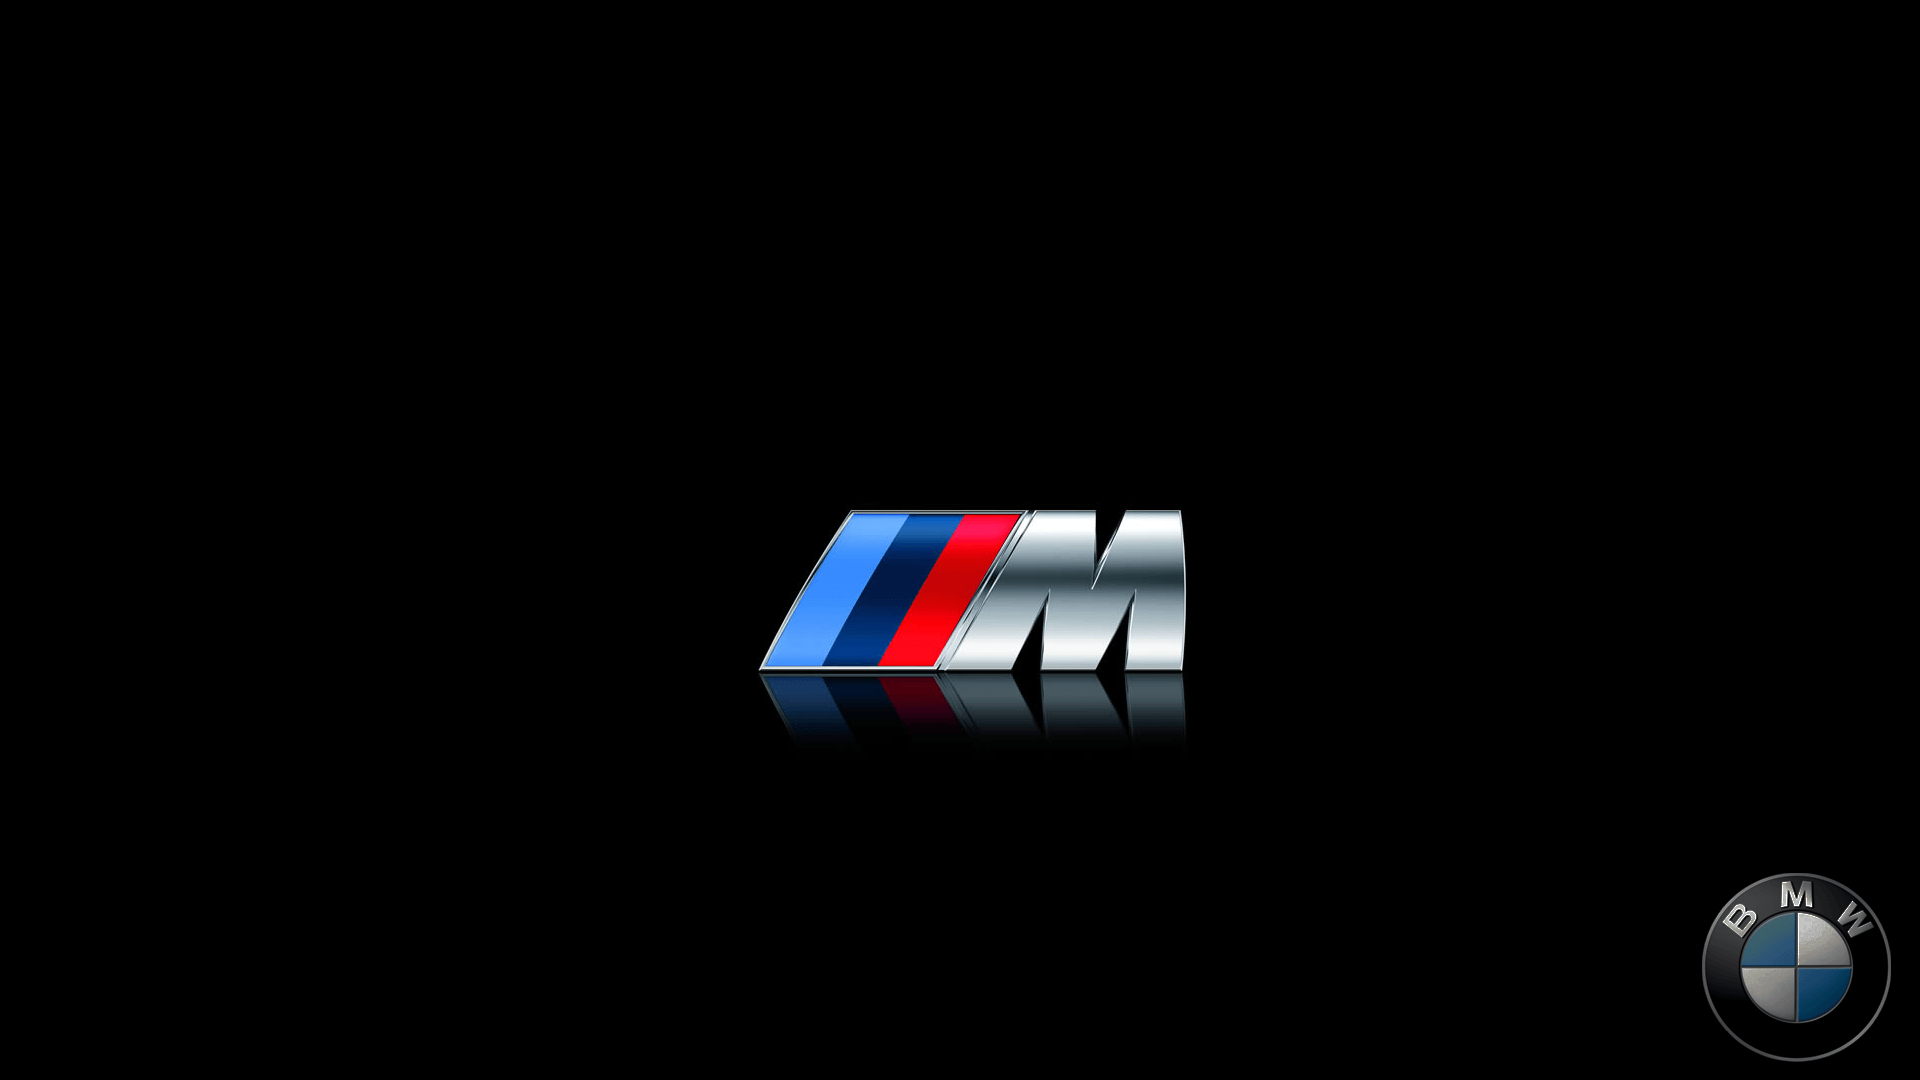 Bmw M Wallpapers Top Free Bmw M Backgrounds Wallpaperaccess